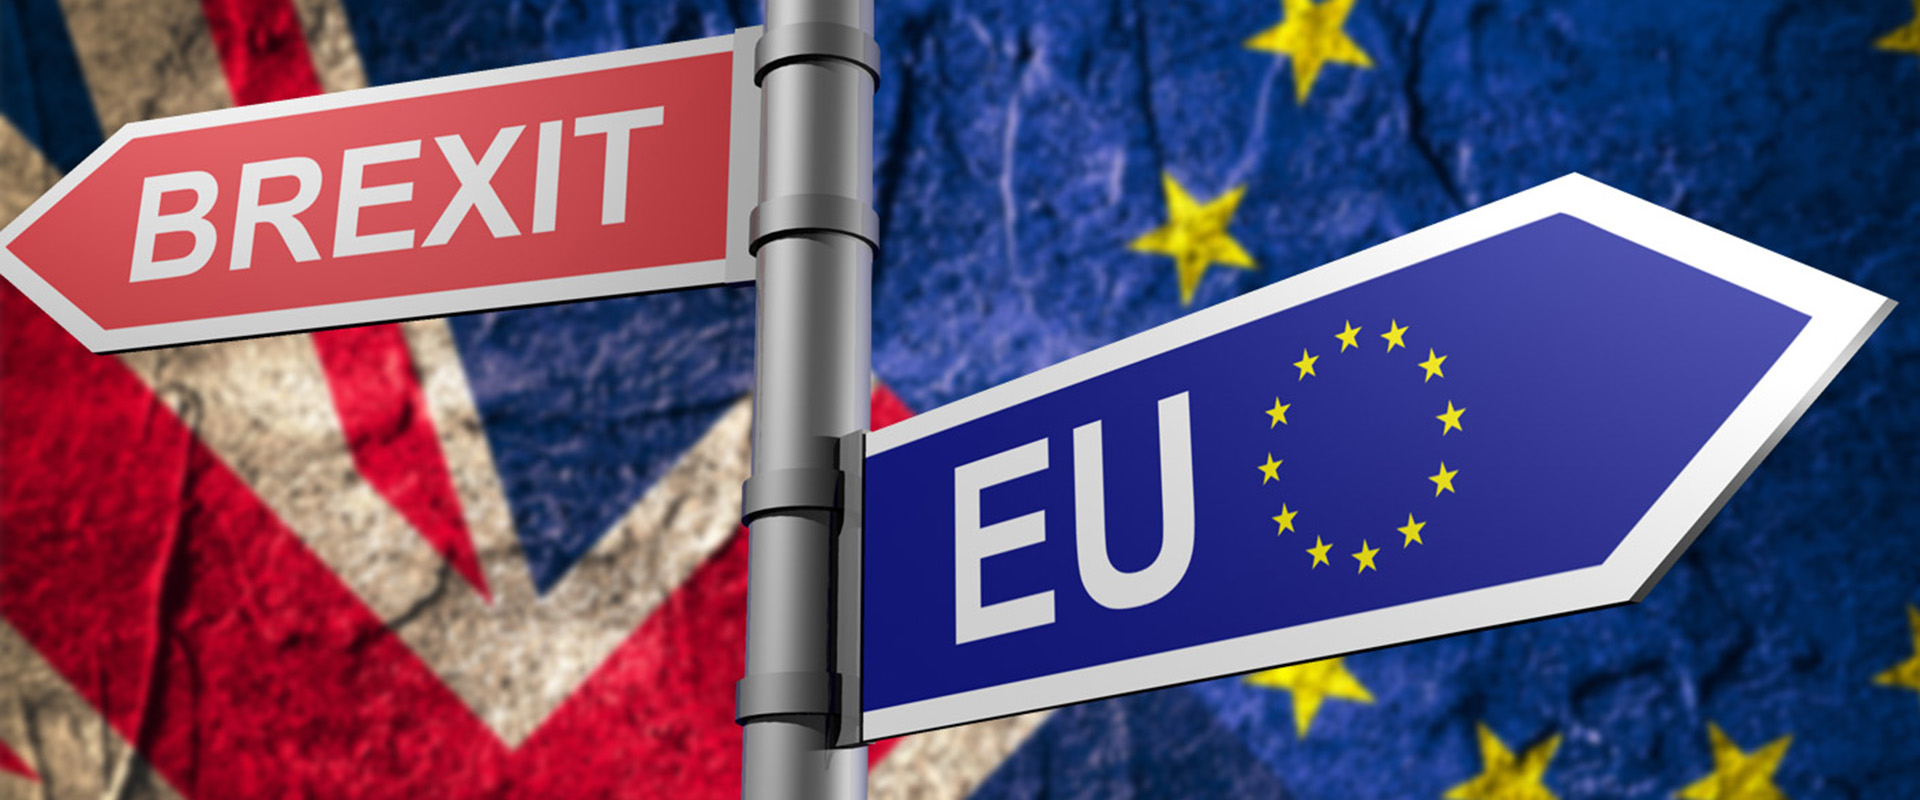 Signpost with Red Brexit sign and Blue EU sign